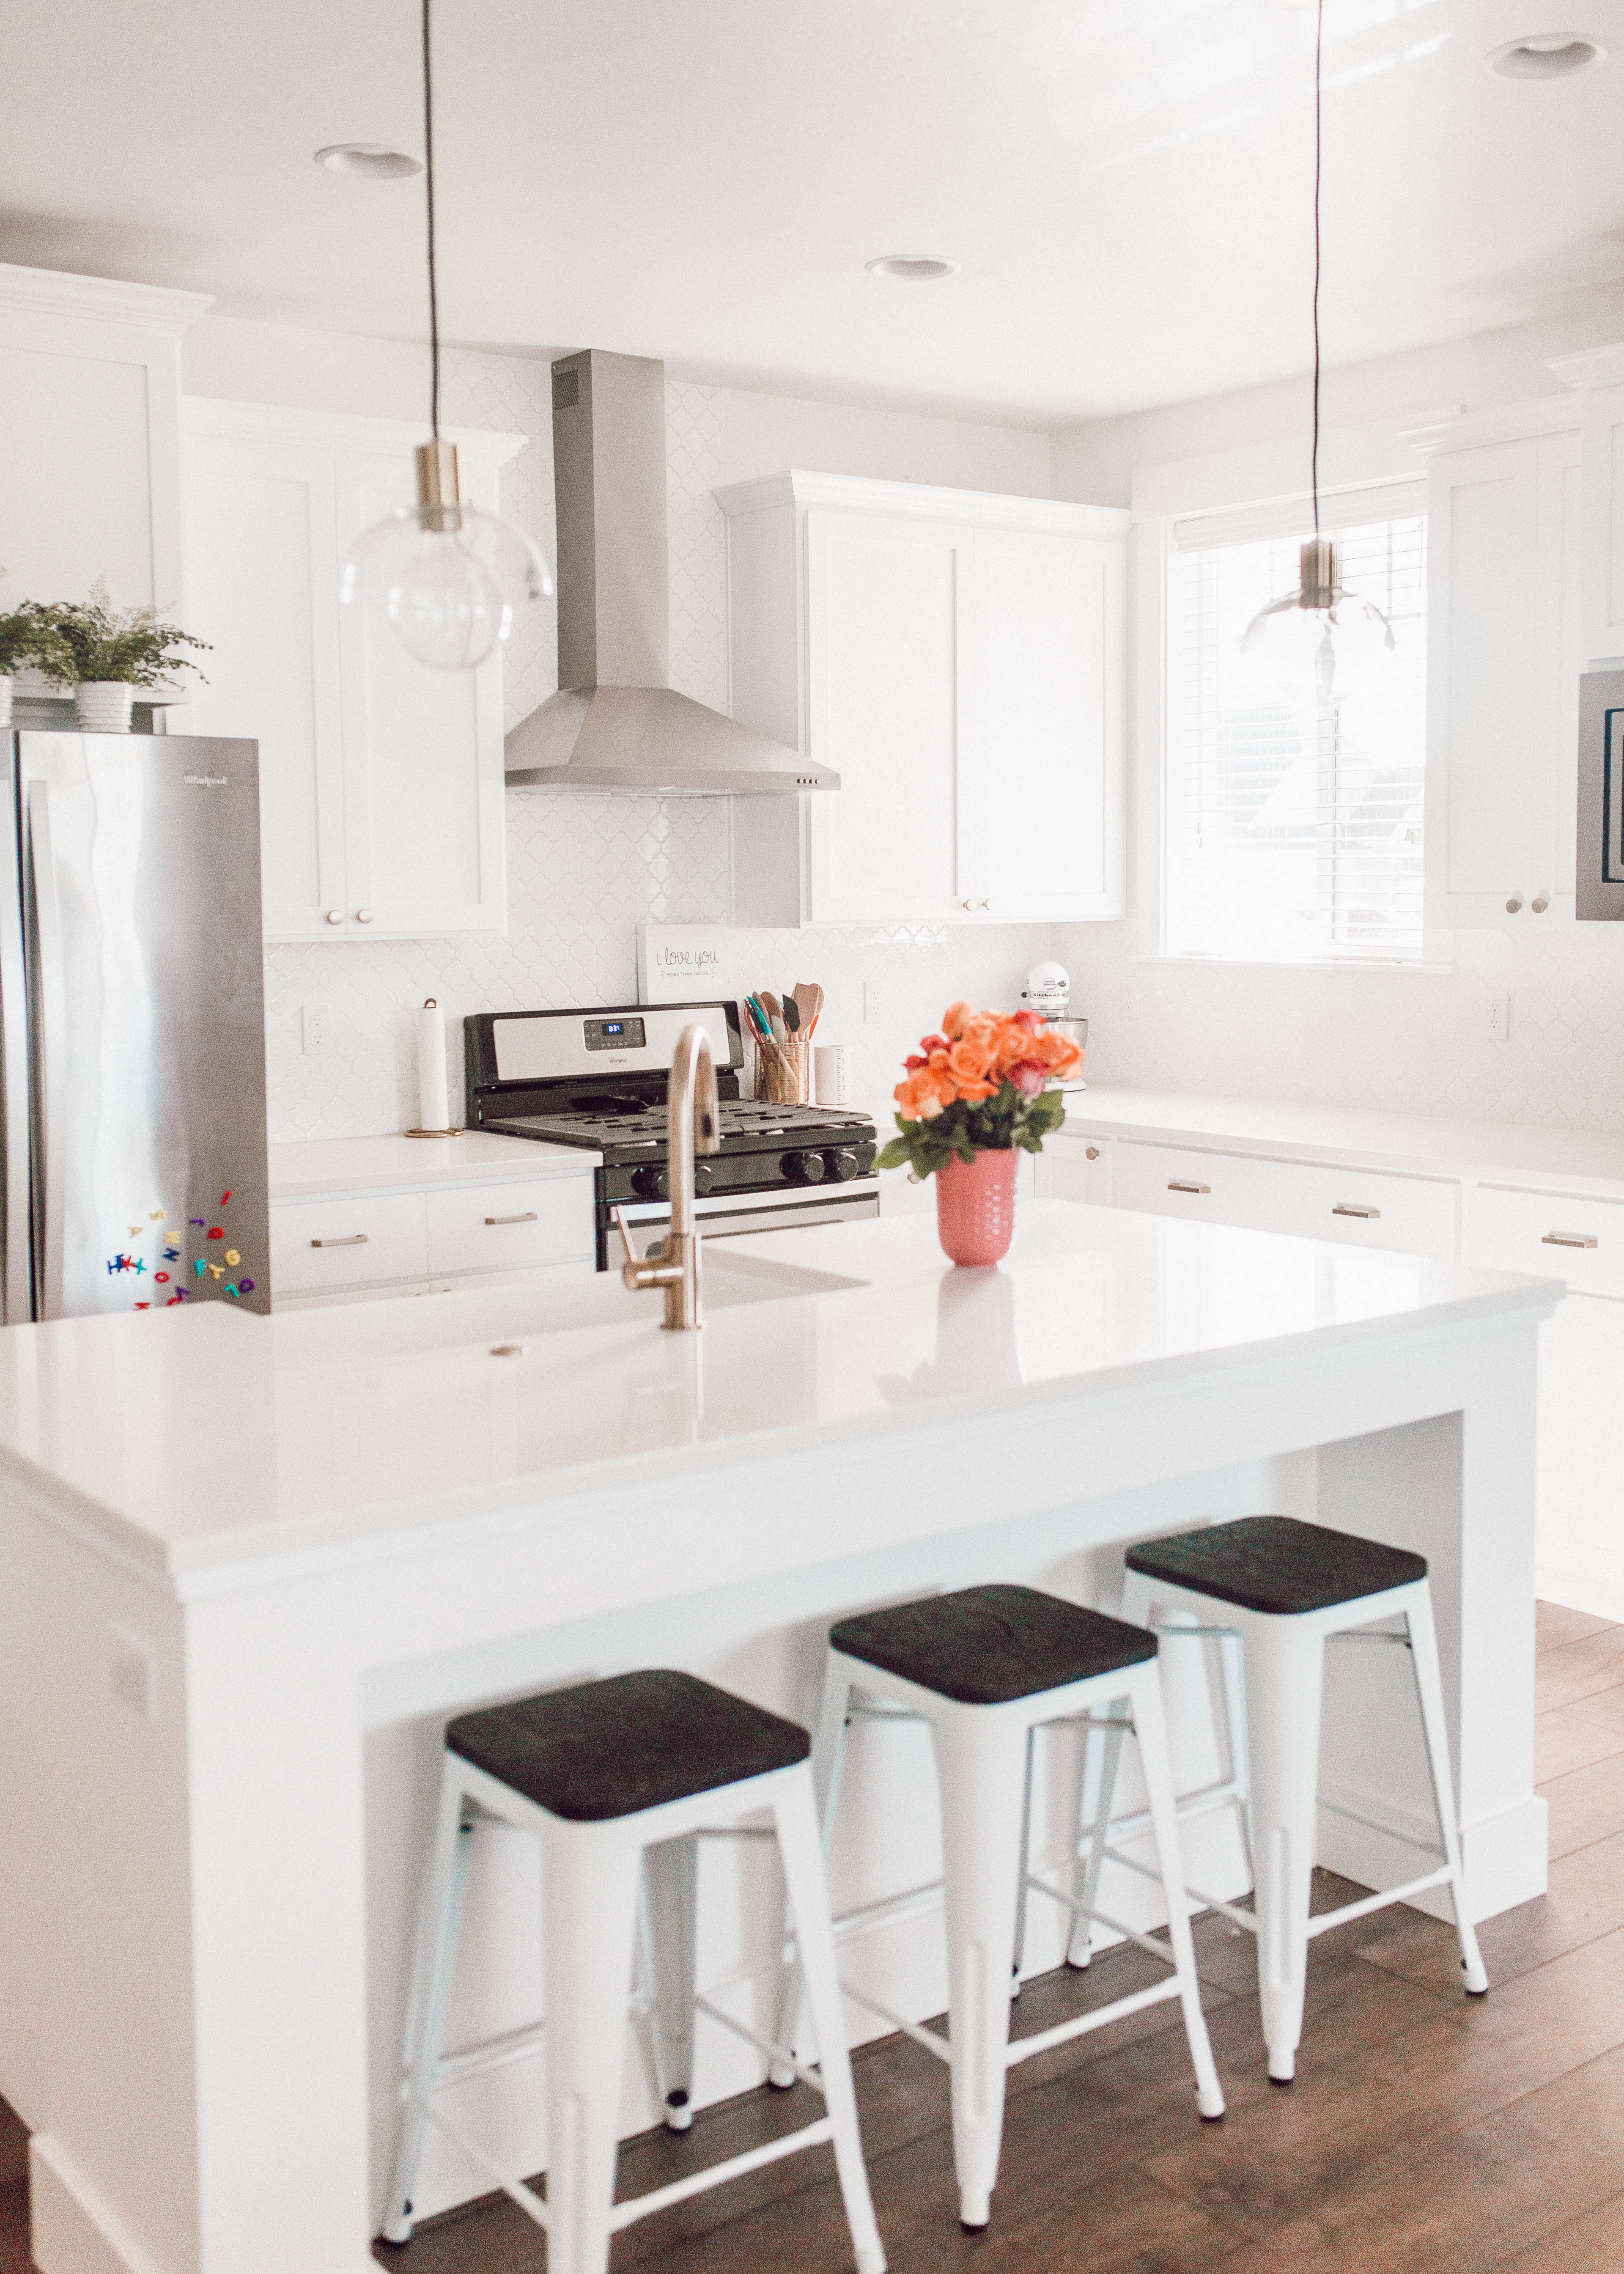 bohemian inspired modern white kitchen with lantern pattern backsplash and gold accents for a clean modern look that's affordable